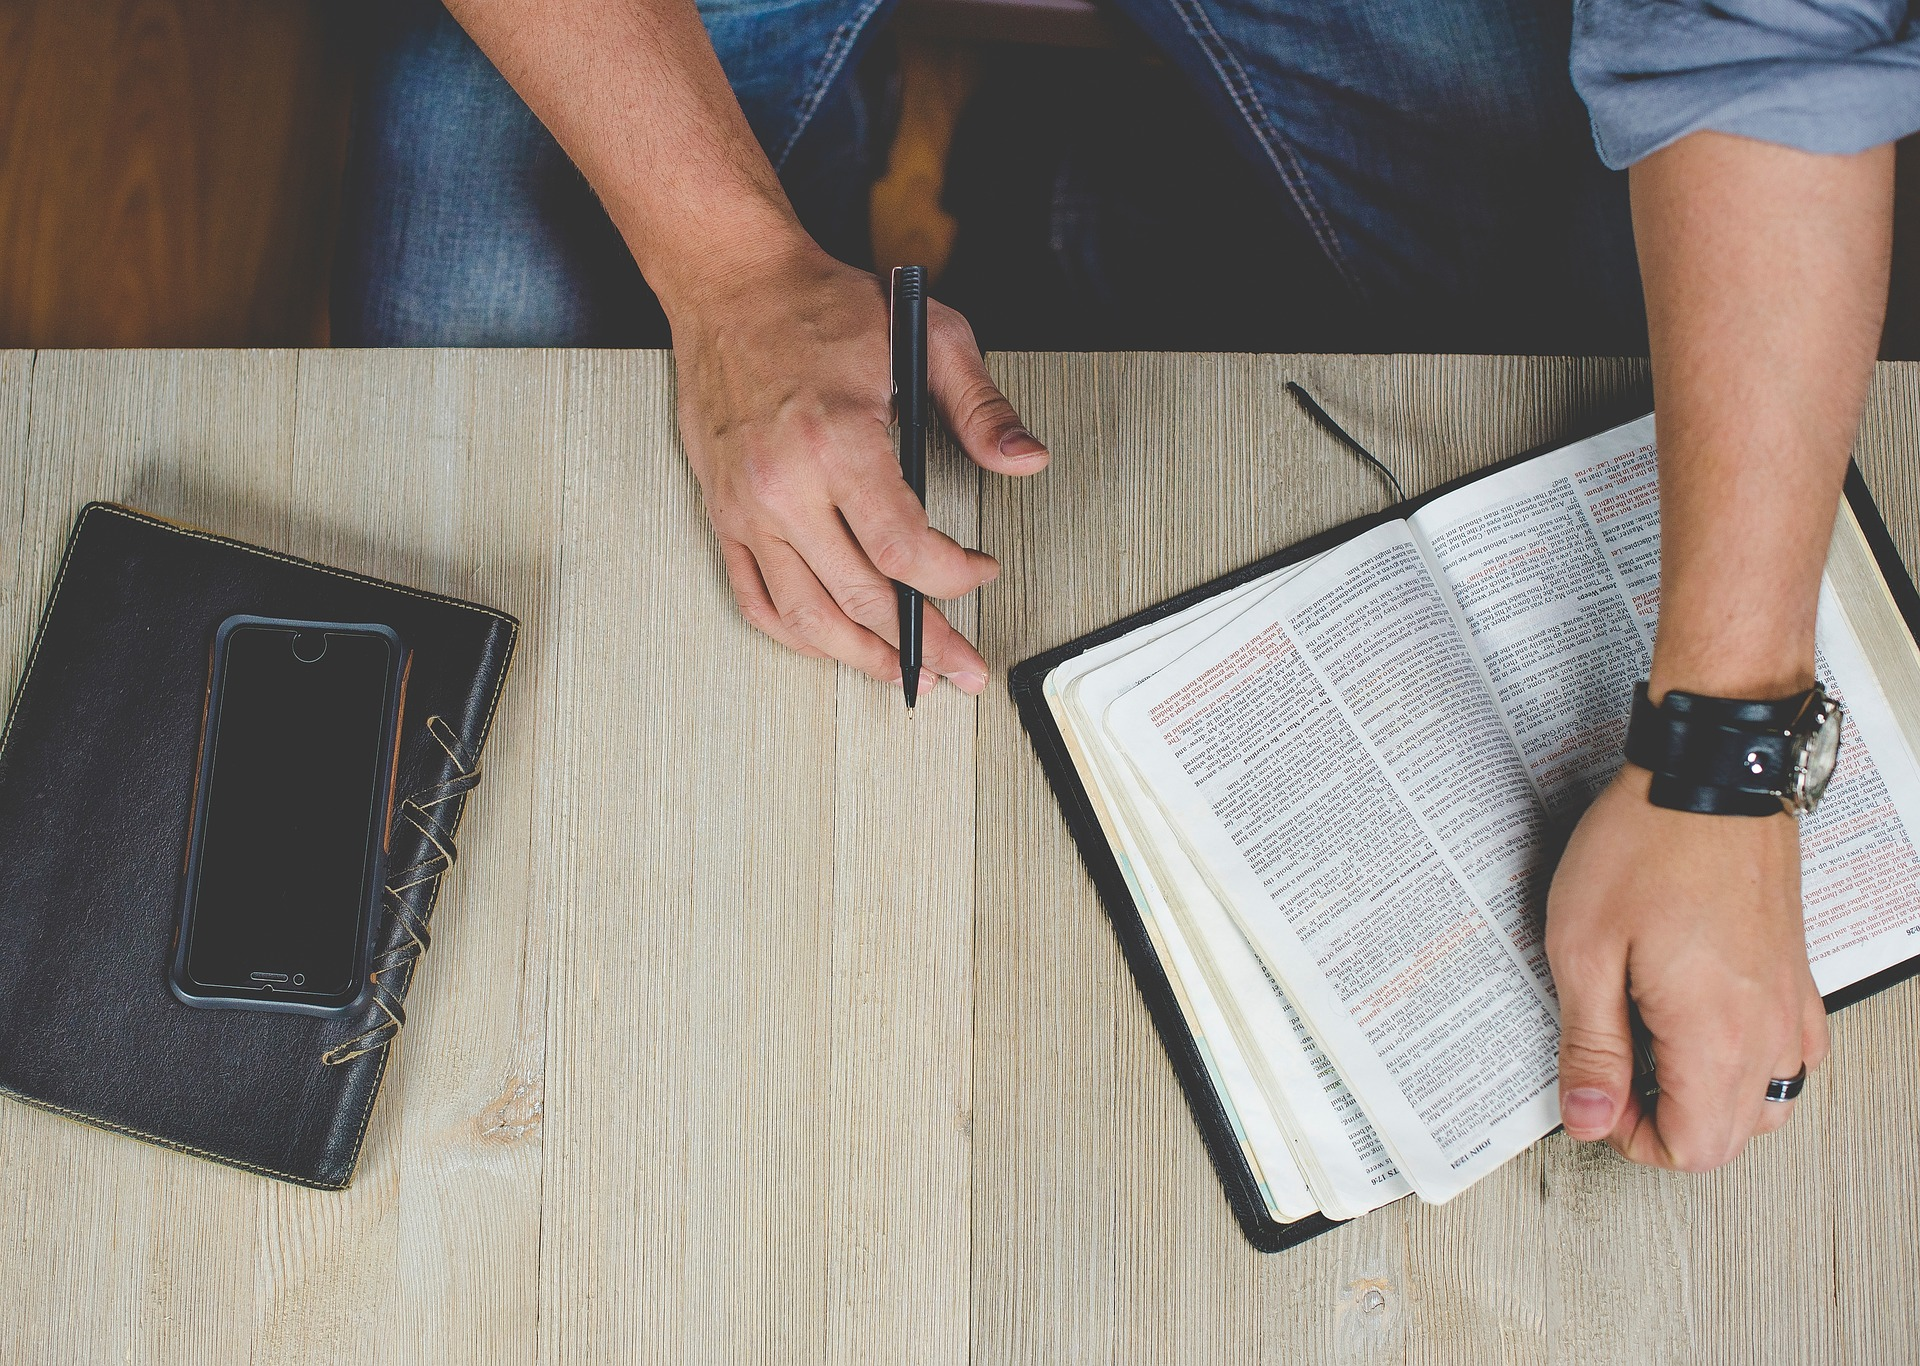 ABTS's partnership with Arabic Nazarene Bible College will open doors to future program growth